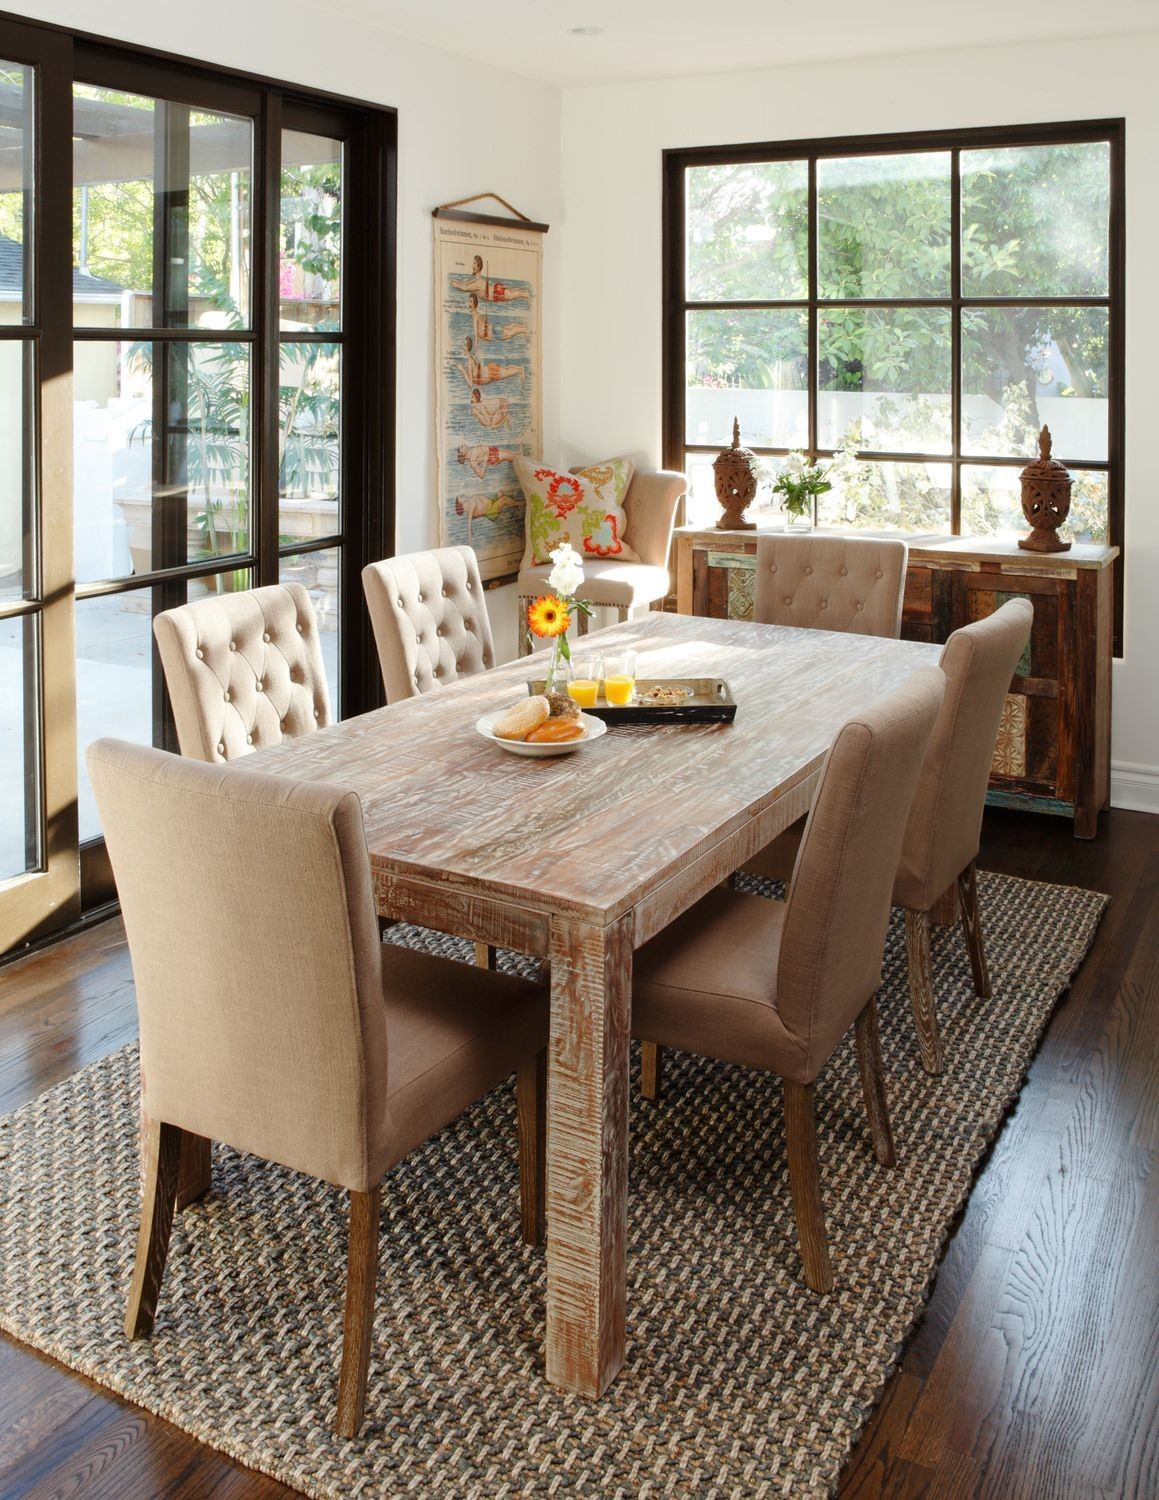 10 Great Ideas Of Bar Table Models To Set In Your Farmhouse Dining Room In 2020 Dining Room Small Rustic Kitchen Tables Rustic Dining Room Table